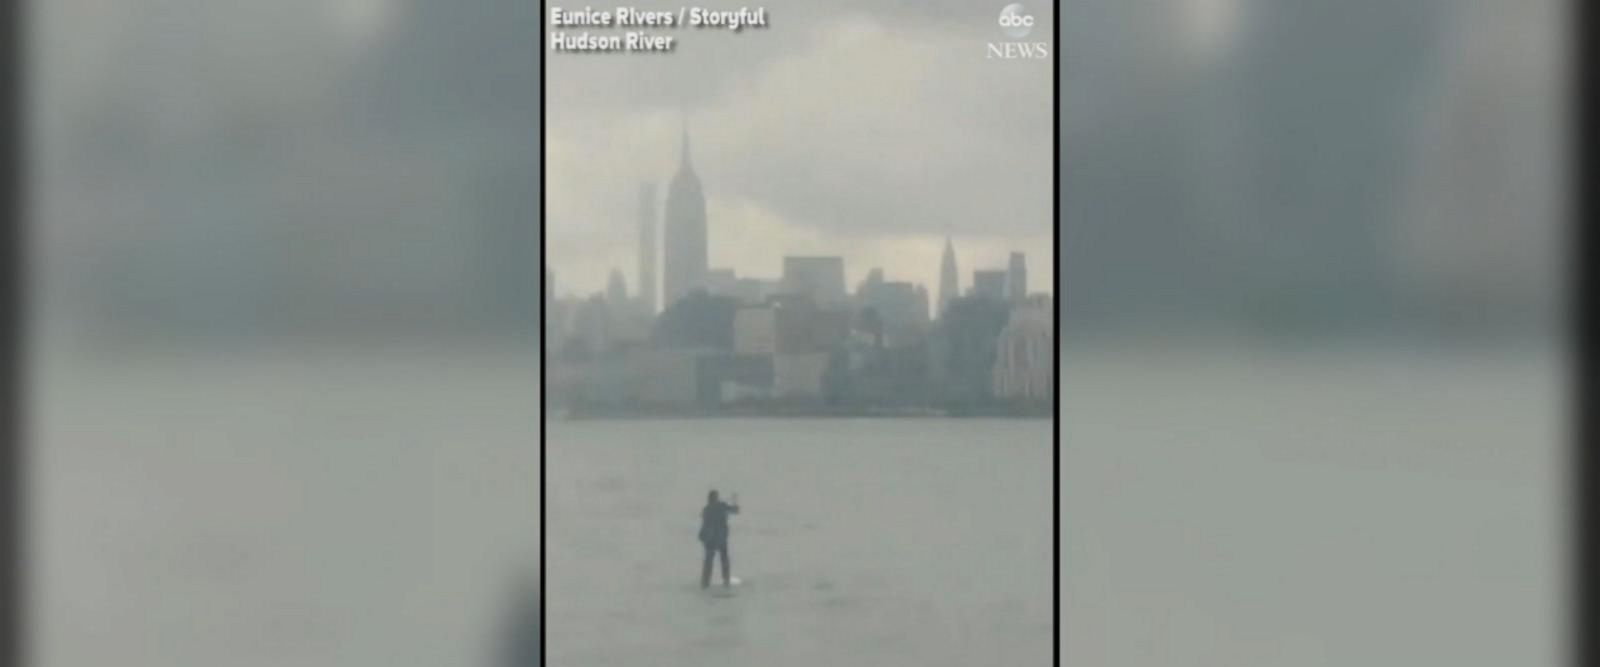 VIDEO: Paddleboarder commutes across the Hudson River